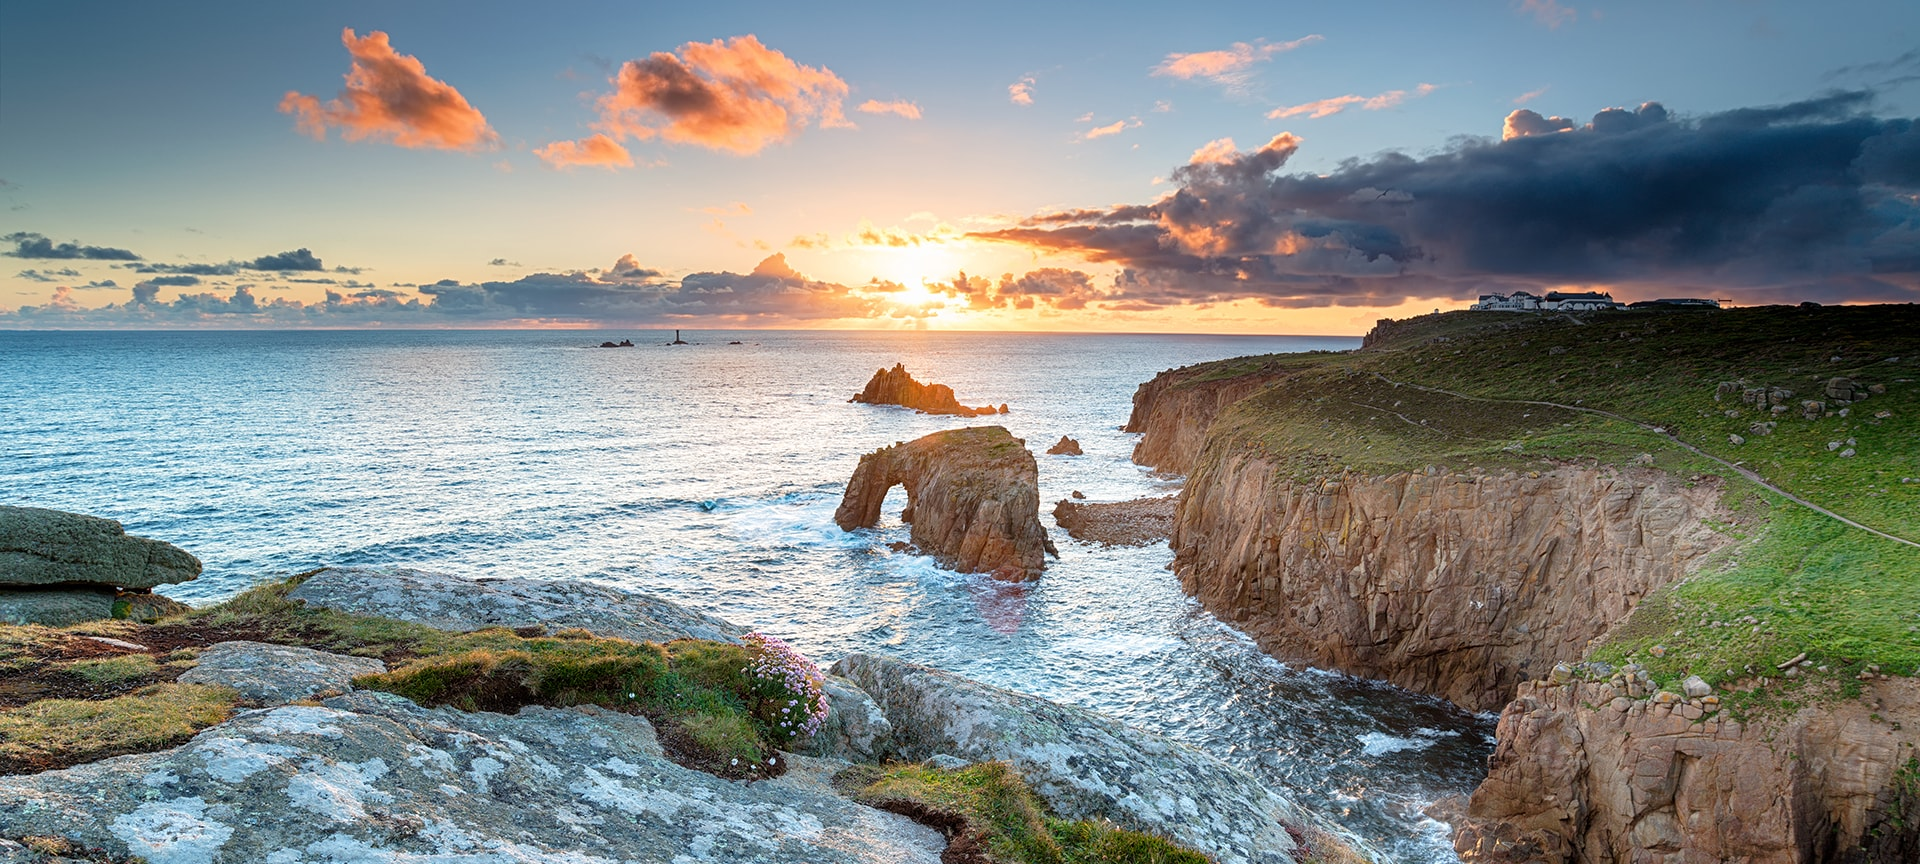 Natural Land's End is only a short walk from the main visitor centre and designated pathways will lead you to discover some truly breath-taking views, including magnificent granite cliffs, the famous Longships Lighthouse and the Isles of Scilly, which are visible on clear and sunny days.